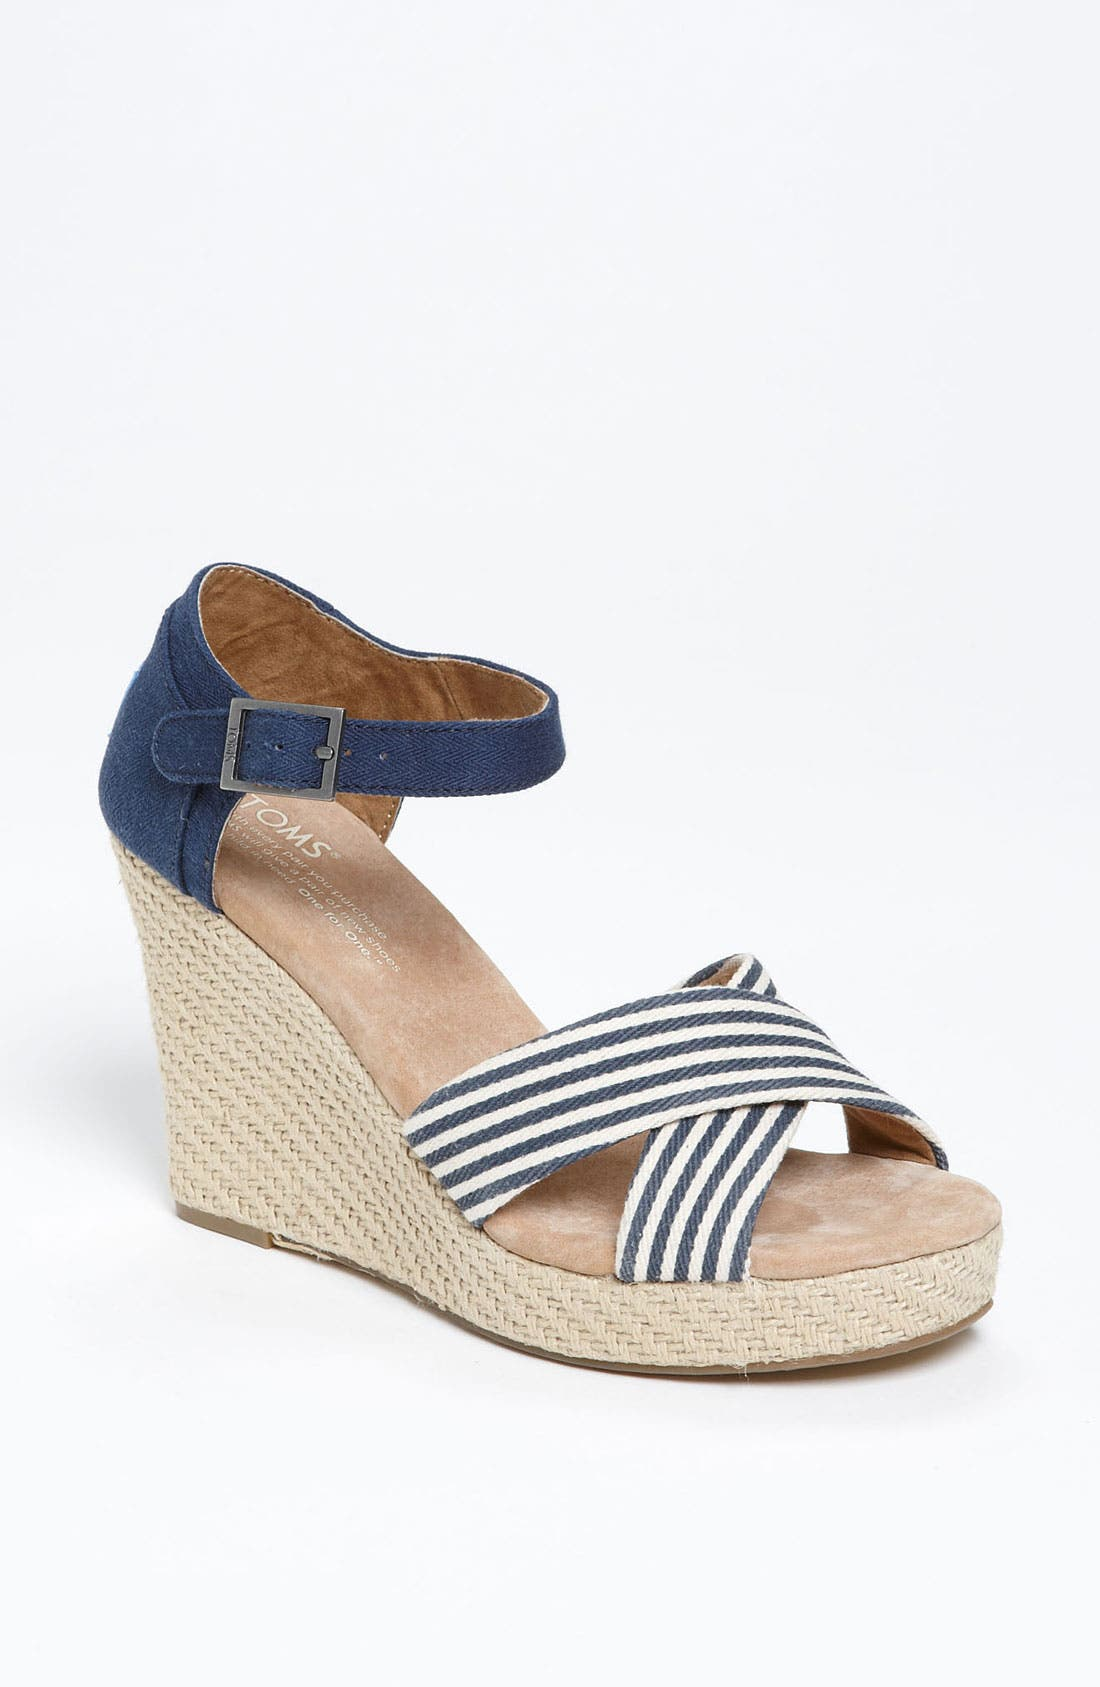 Alternate Image 1 Selected - TOMS 'University Stripe' Sandal